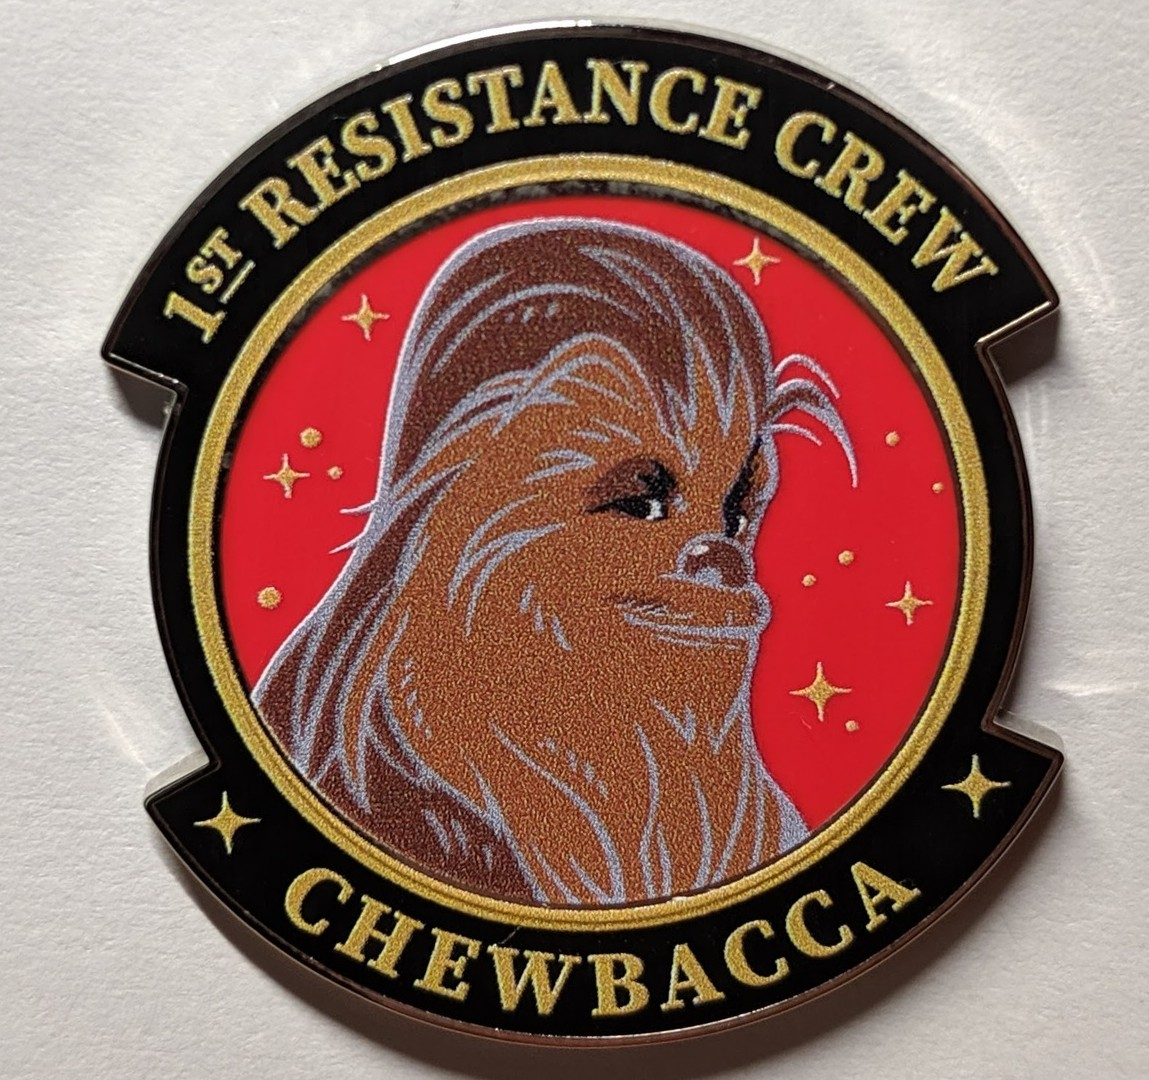 Chewbacca 1st Resistance Crew